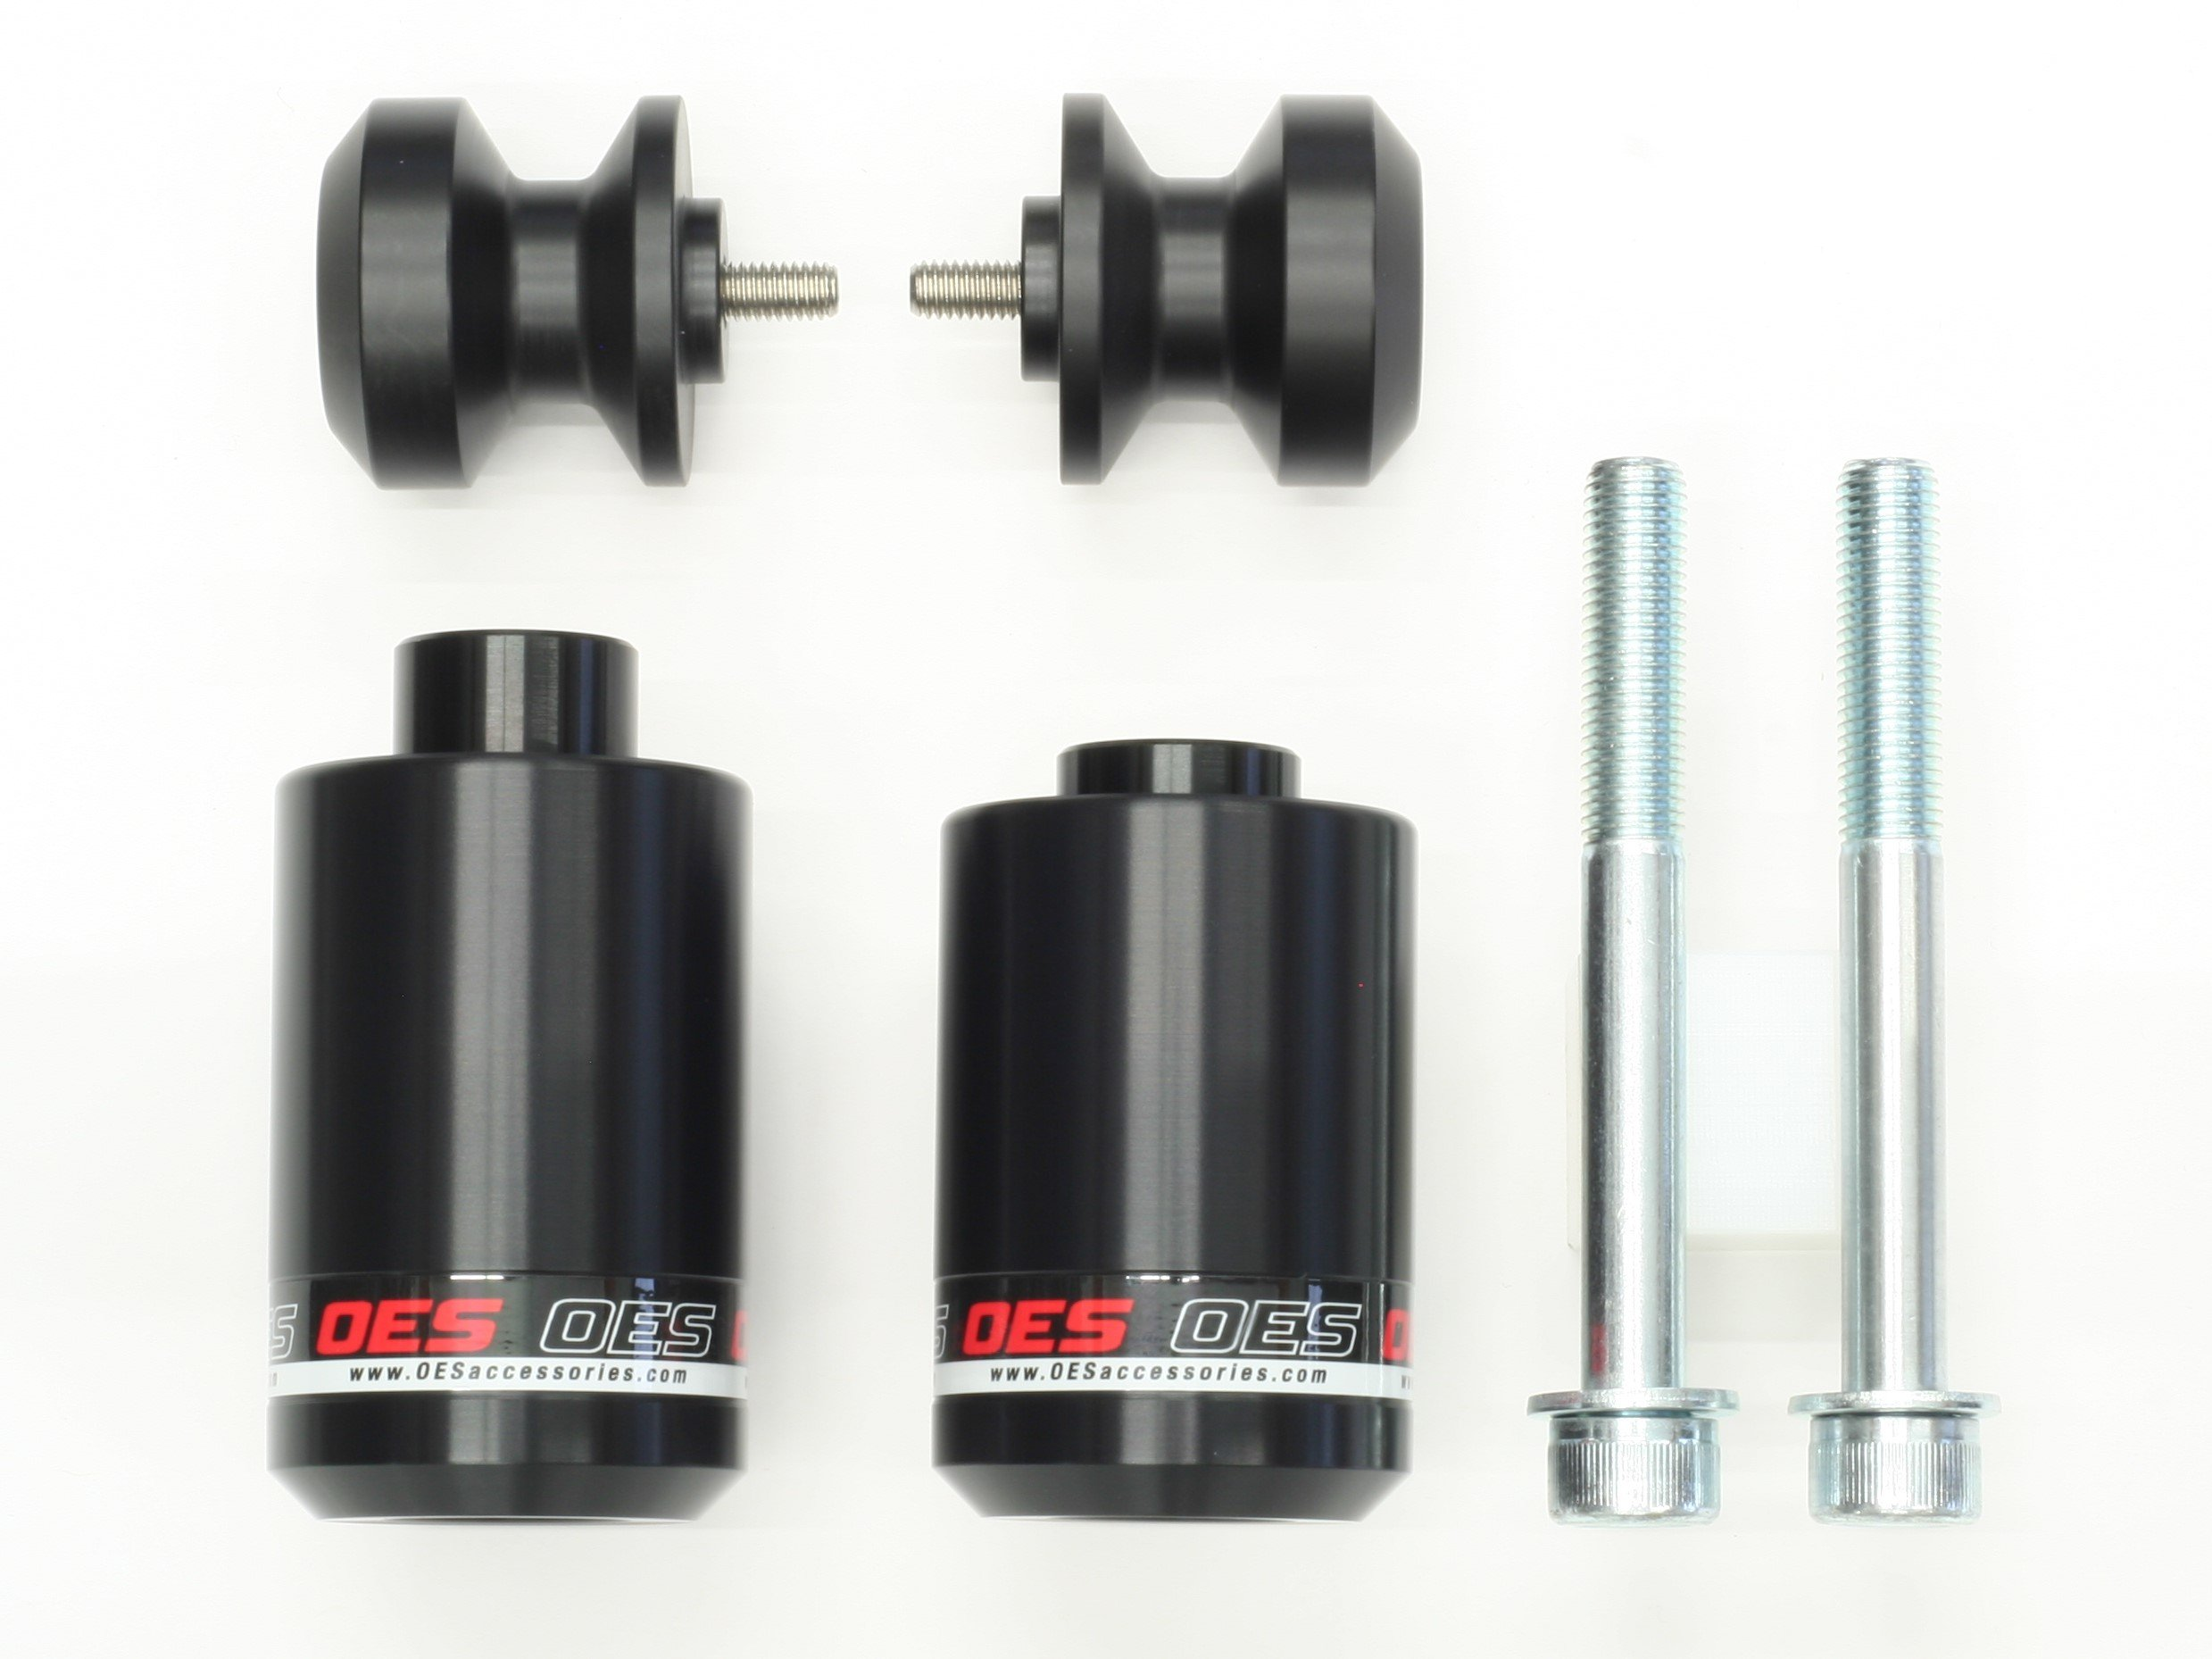 OES Frame Sliders and Swingarm Spools 2017 2019 Yamaha FZ-09 MT-09 (Red) by OES Accessories